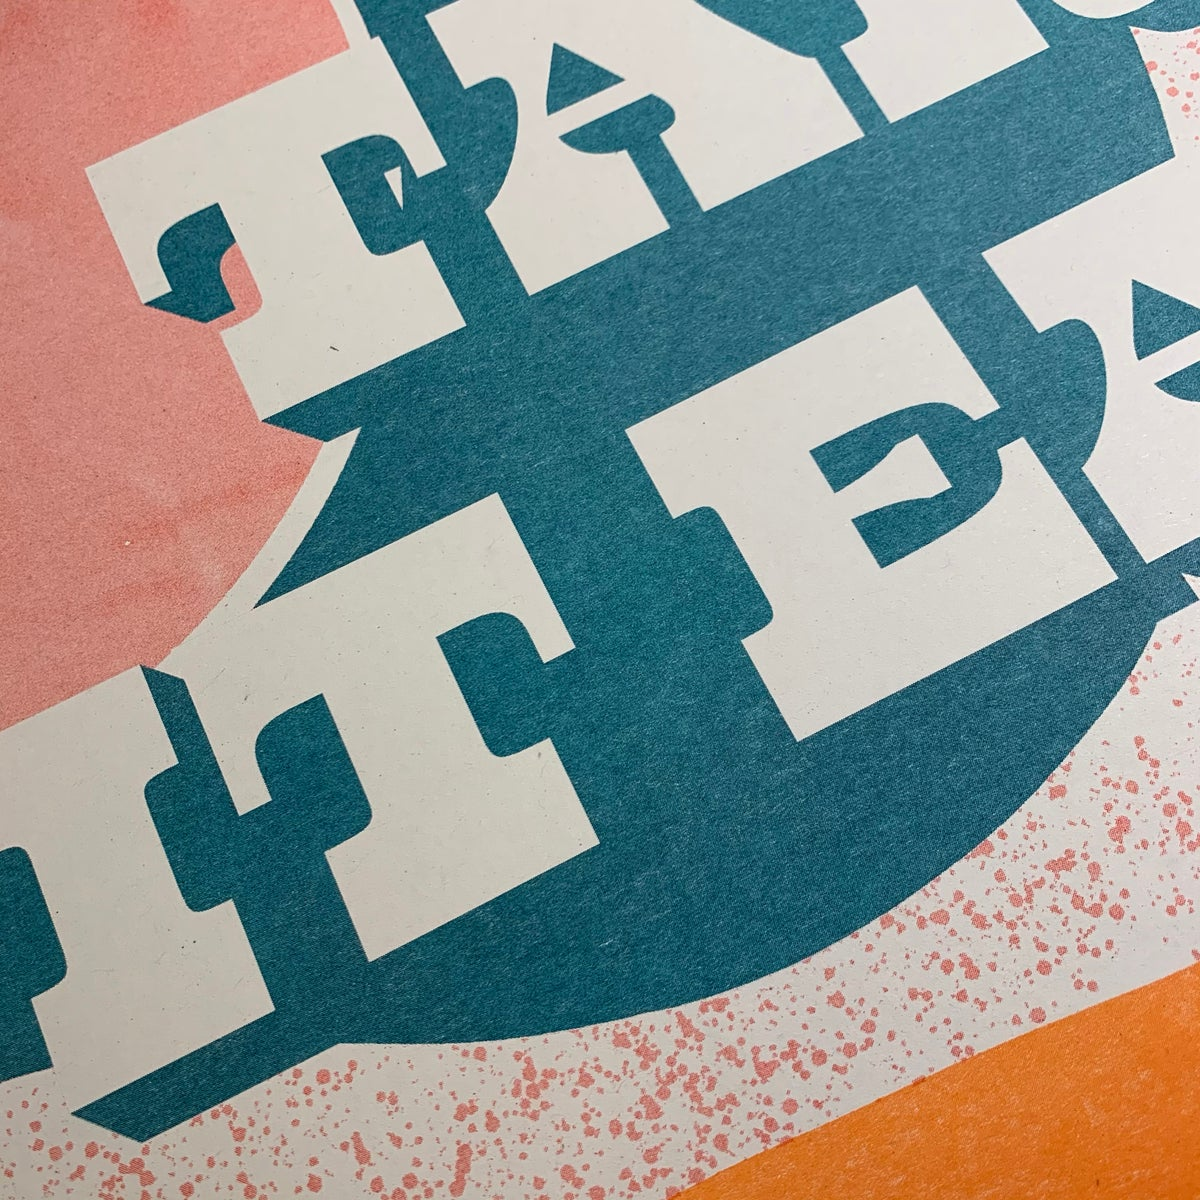 Image of 'Take It Easy' A3 Riso Collab Print